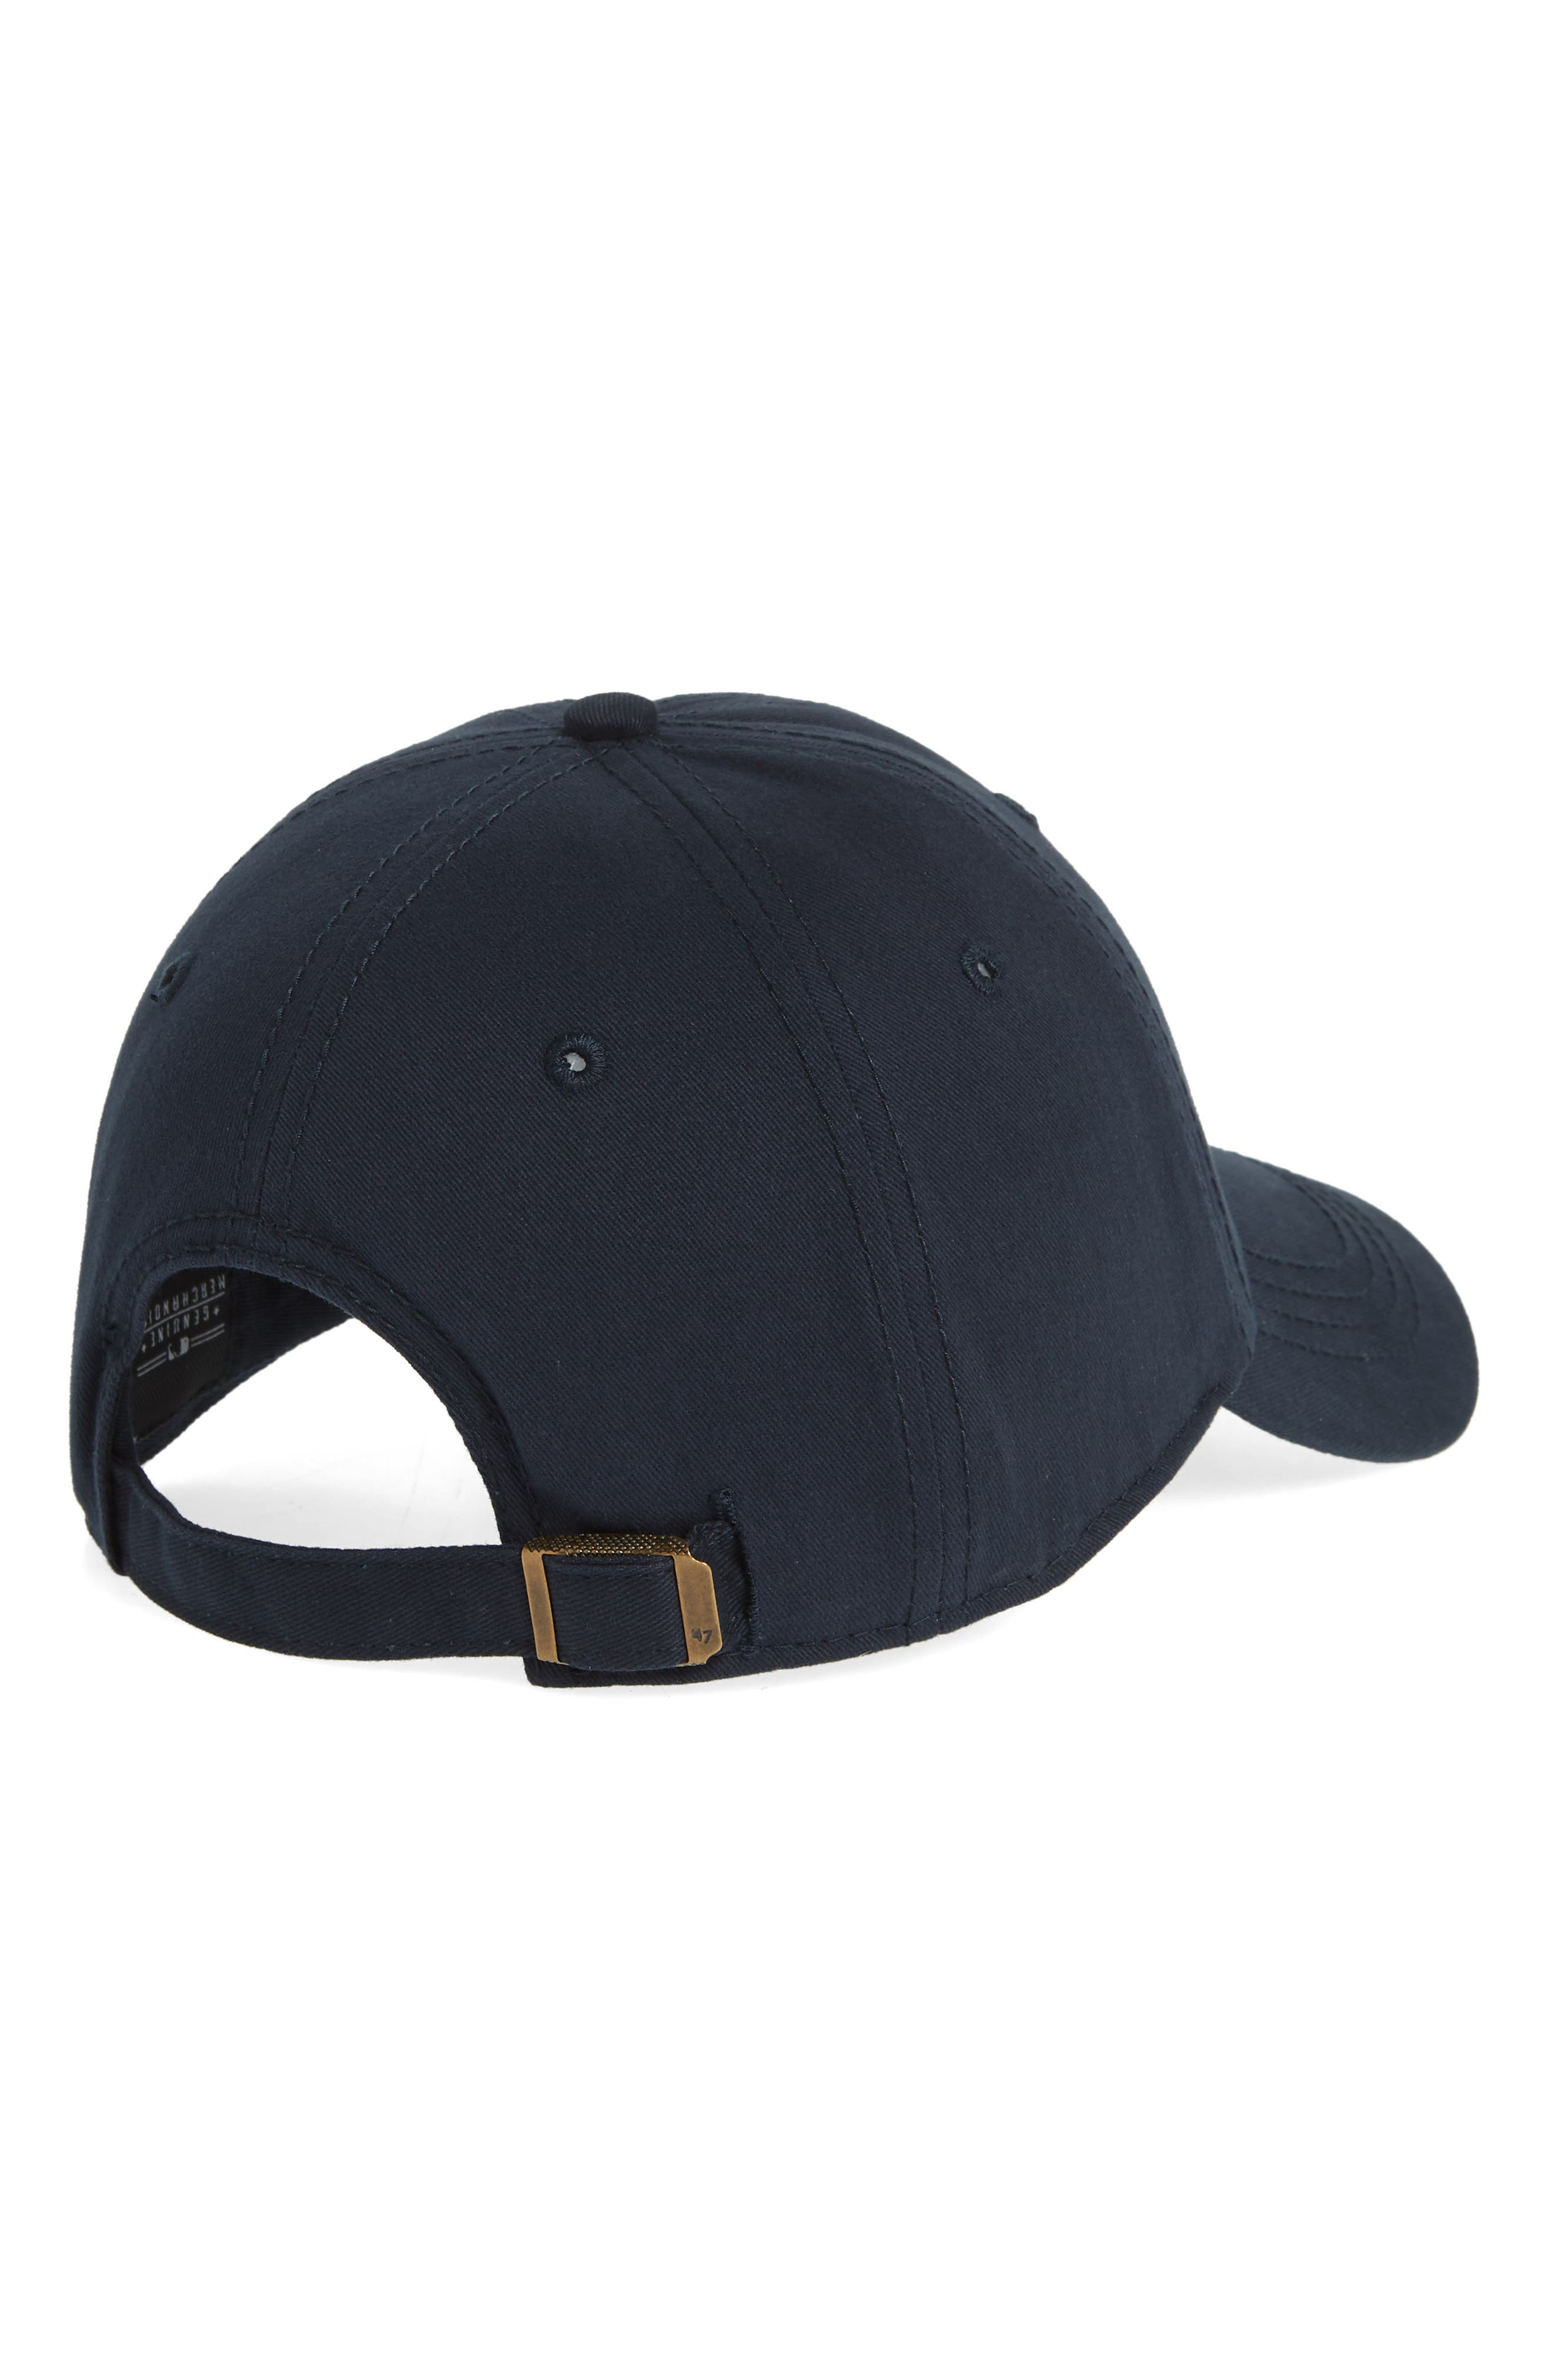 Miata Clean-Up New York Yankees Baseball Cap,                             Alternate thumbnail 2, color,                             Navy